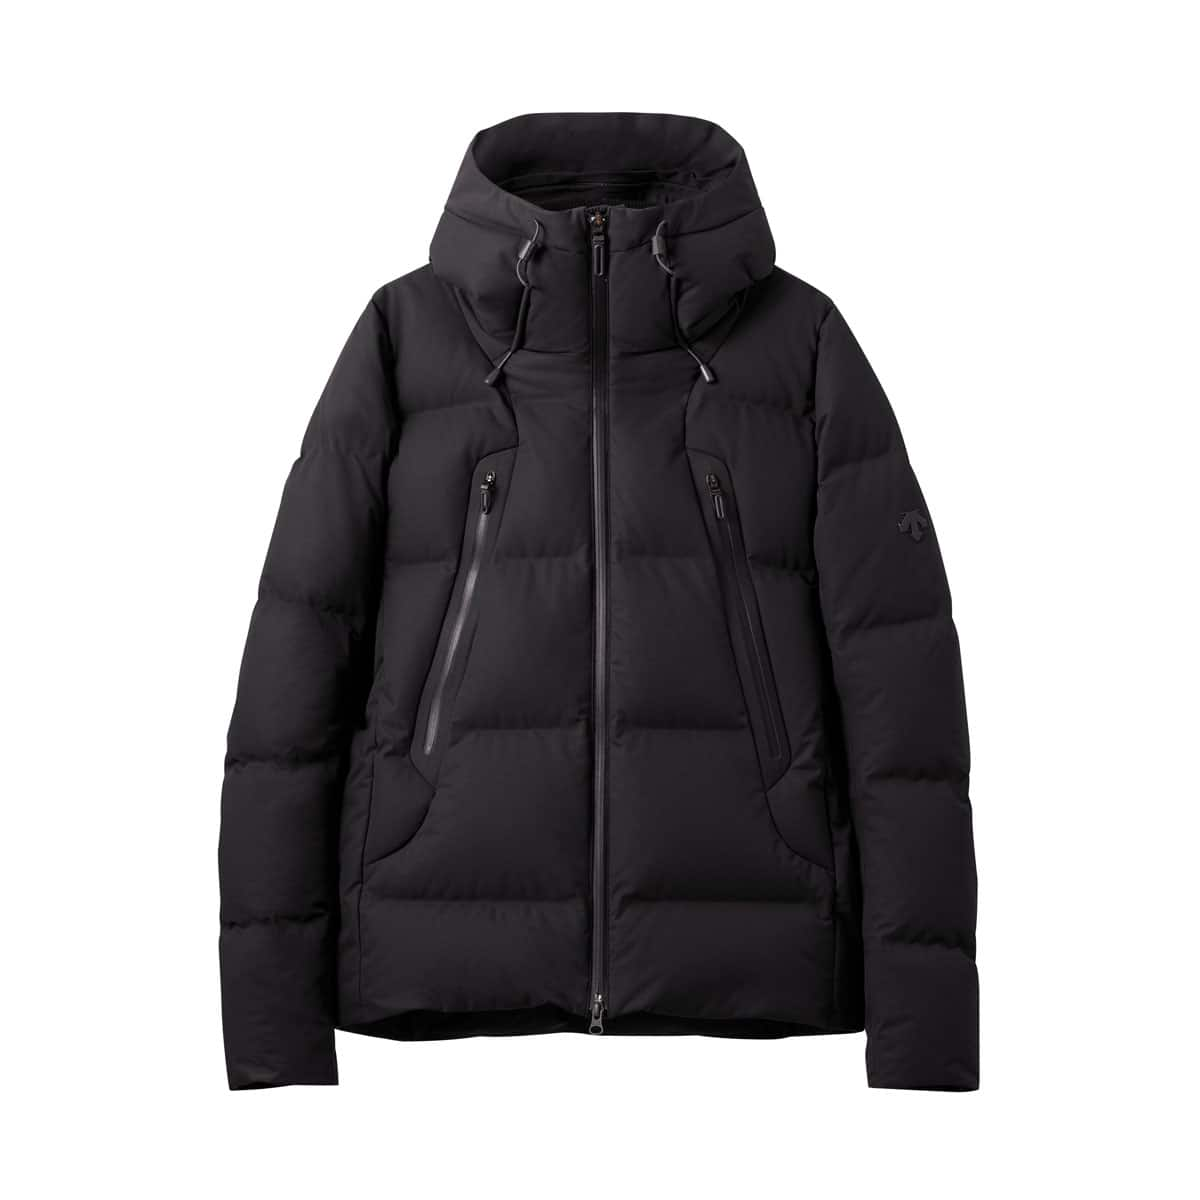 DESCENTE MIZUSAWA MOUNTAINEER BLACK 20FW-I_photo_large